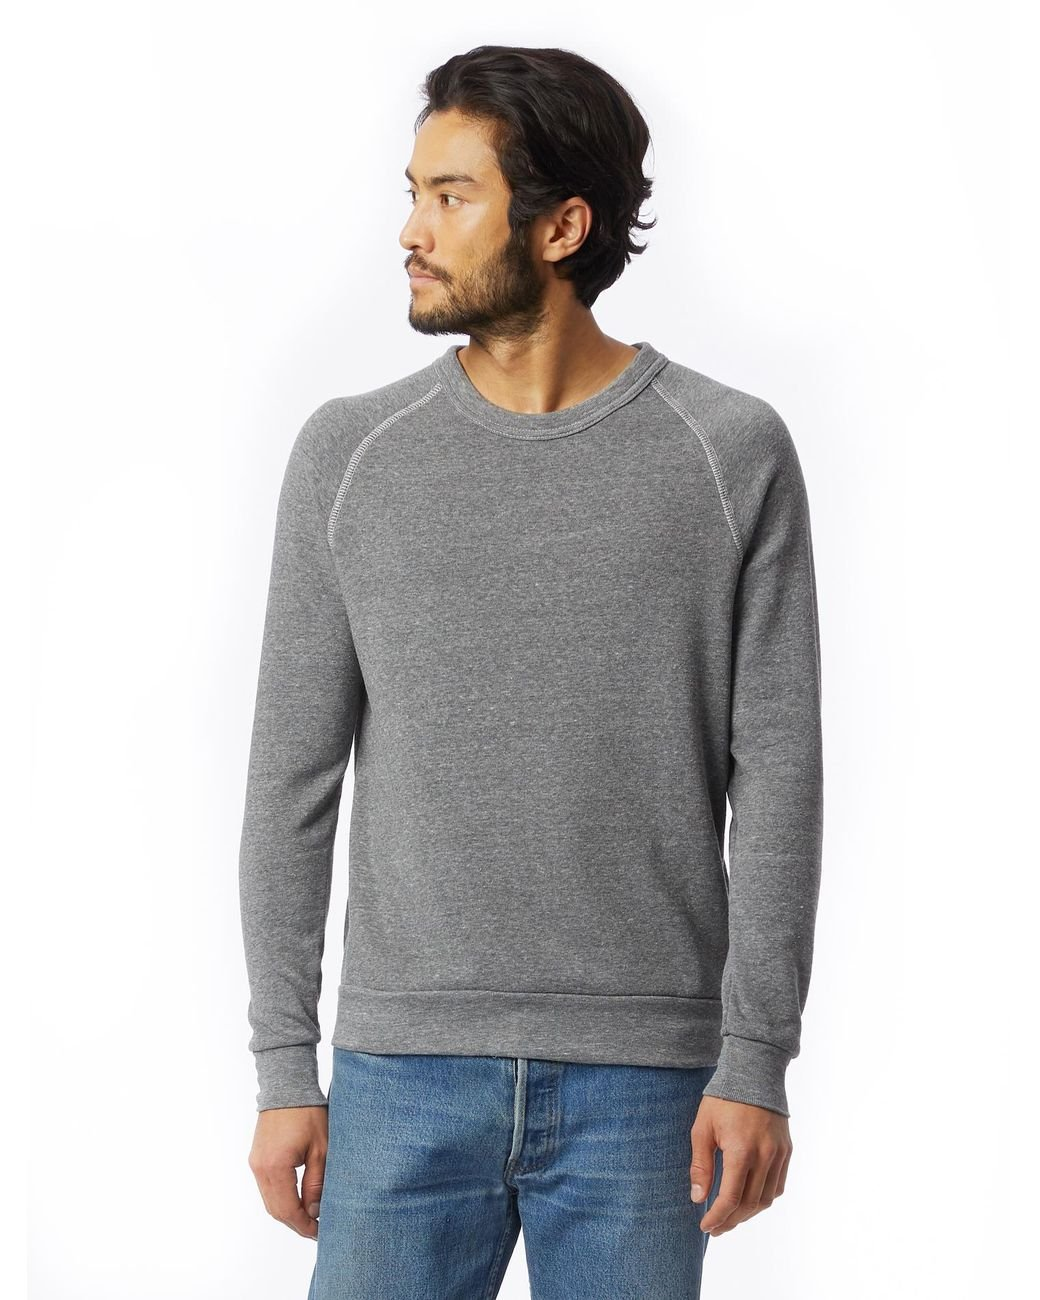 6929ae282dd5 Lyst - Alternative Apparel Champ Eco-fleece Sweatshirt in Gray for Men